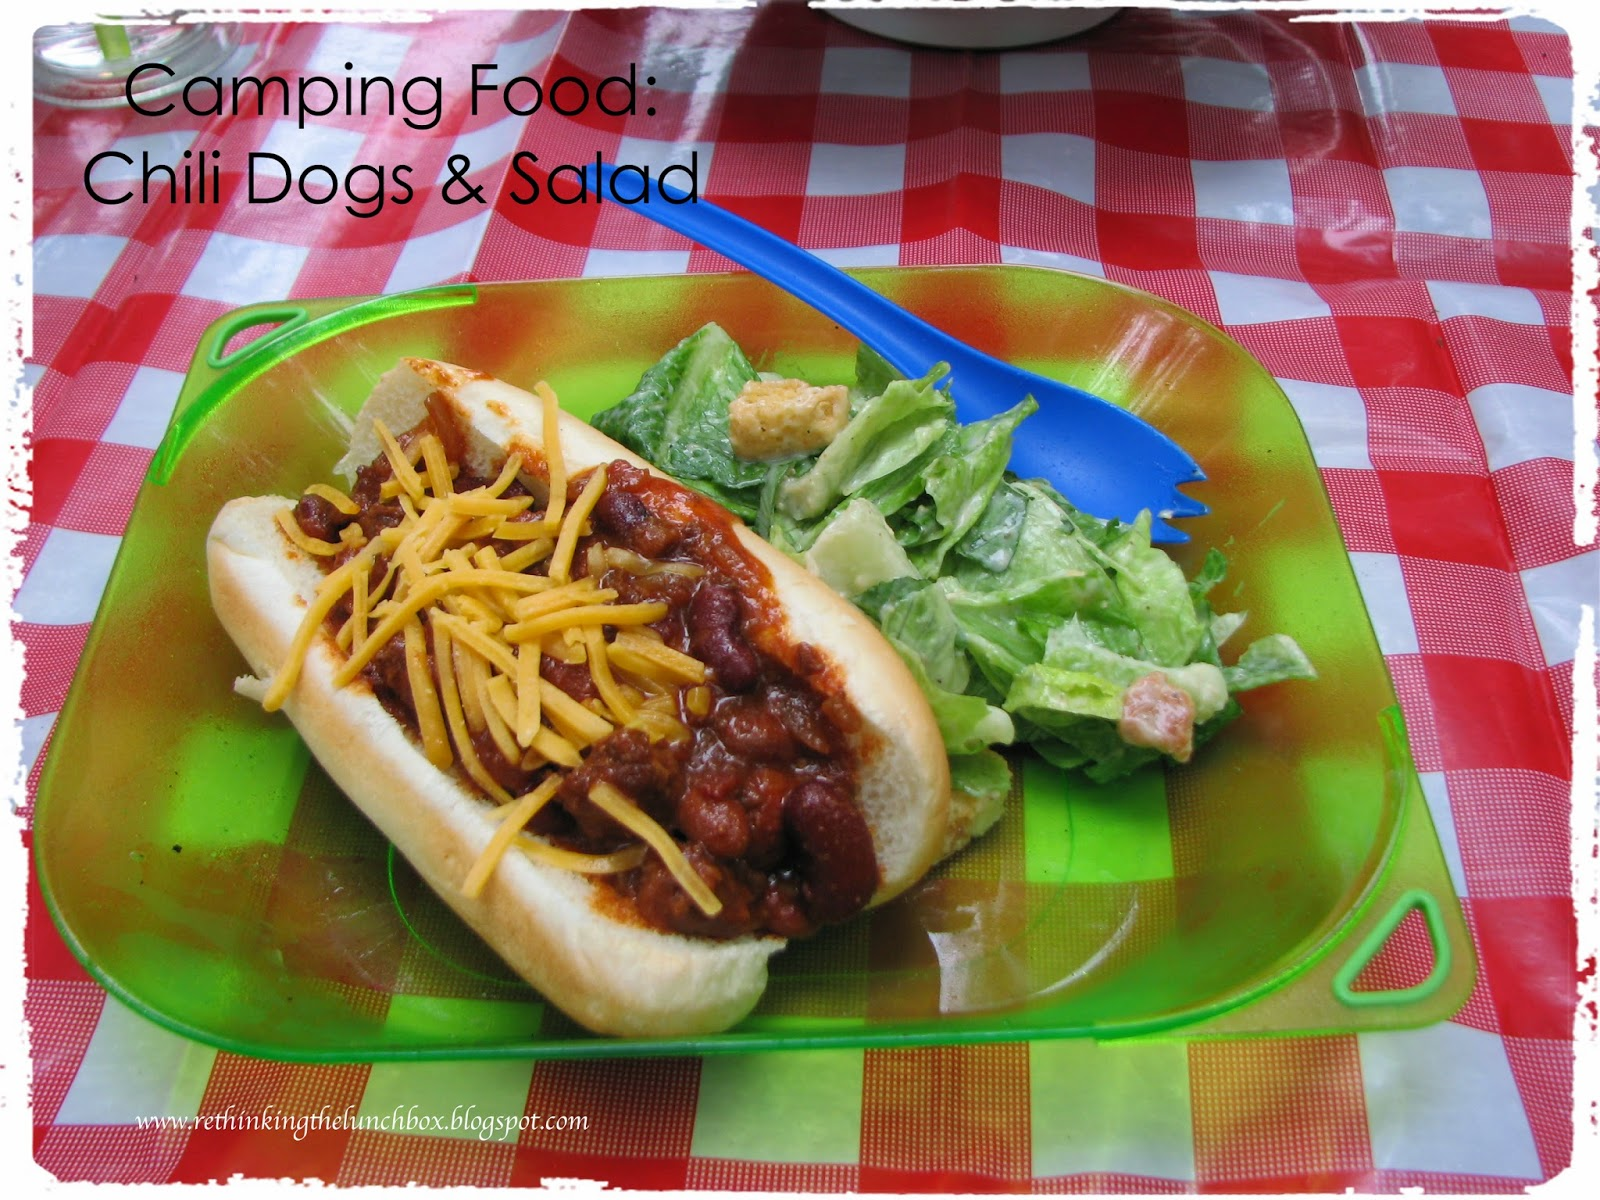 After Setting Up Our Tent And Campsite We Were Purty Darn Hungry For Dinner Chili Dogs Caesar Salad The Kids Grilled Jennie O